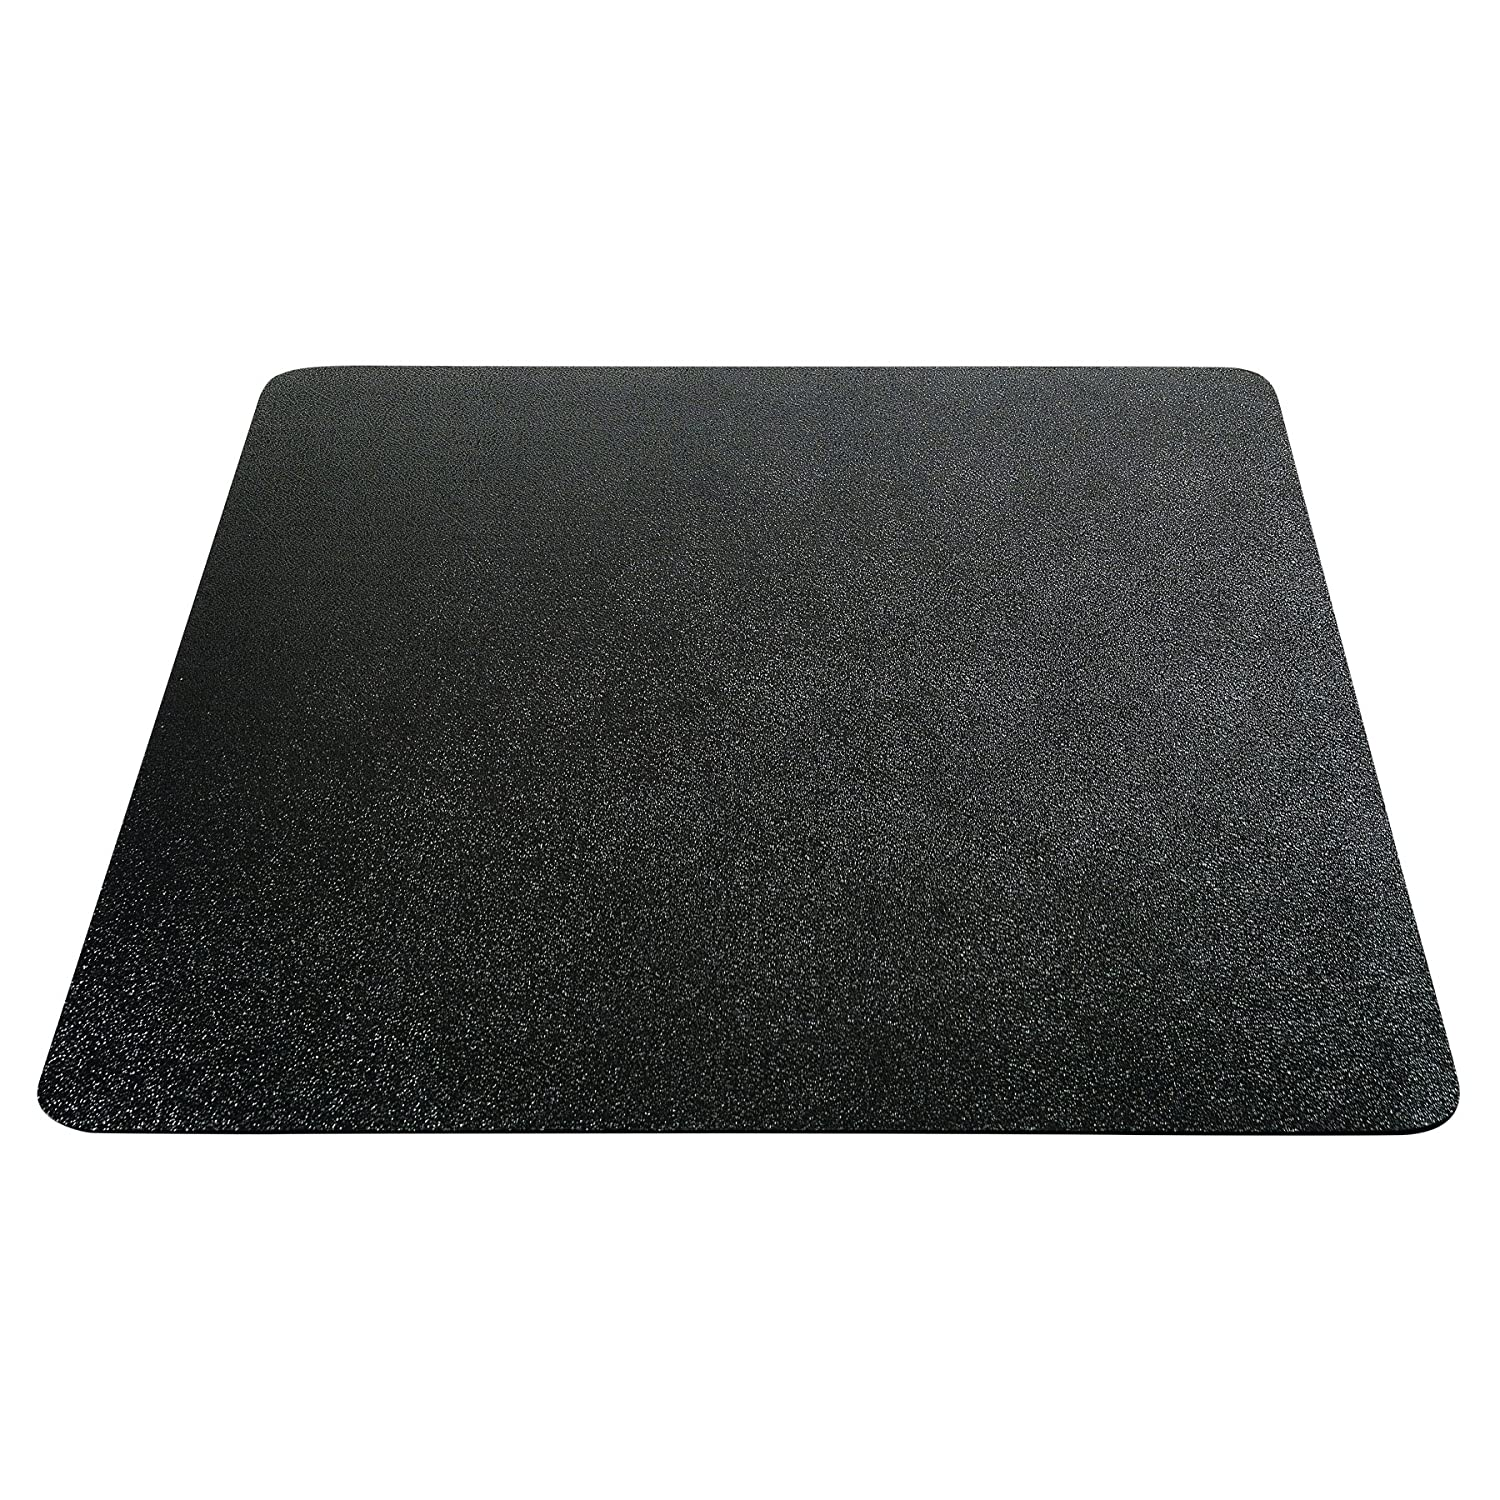 "Deflecto EconoMat Chair Mat, Non-Studded for Hard Floors, Straight Edge, 46"" x 60"", Black (CM21442FBLKCOM)"